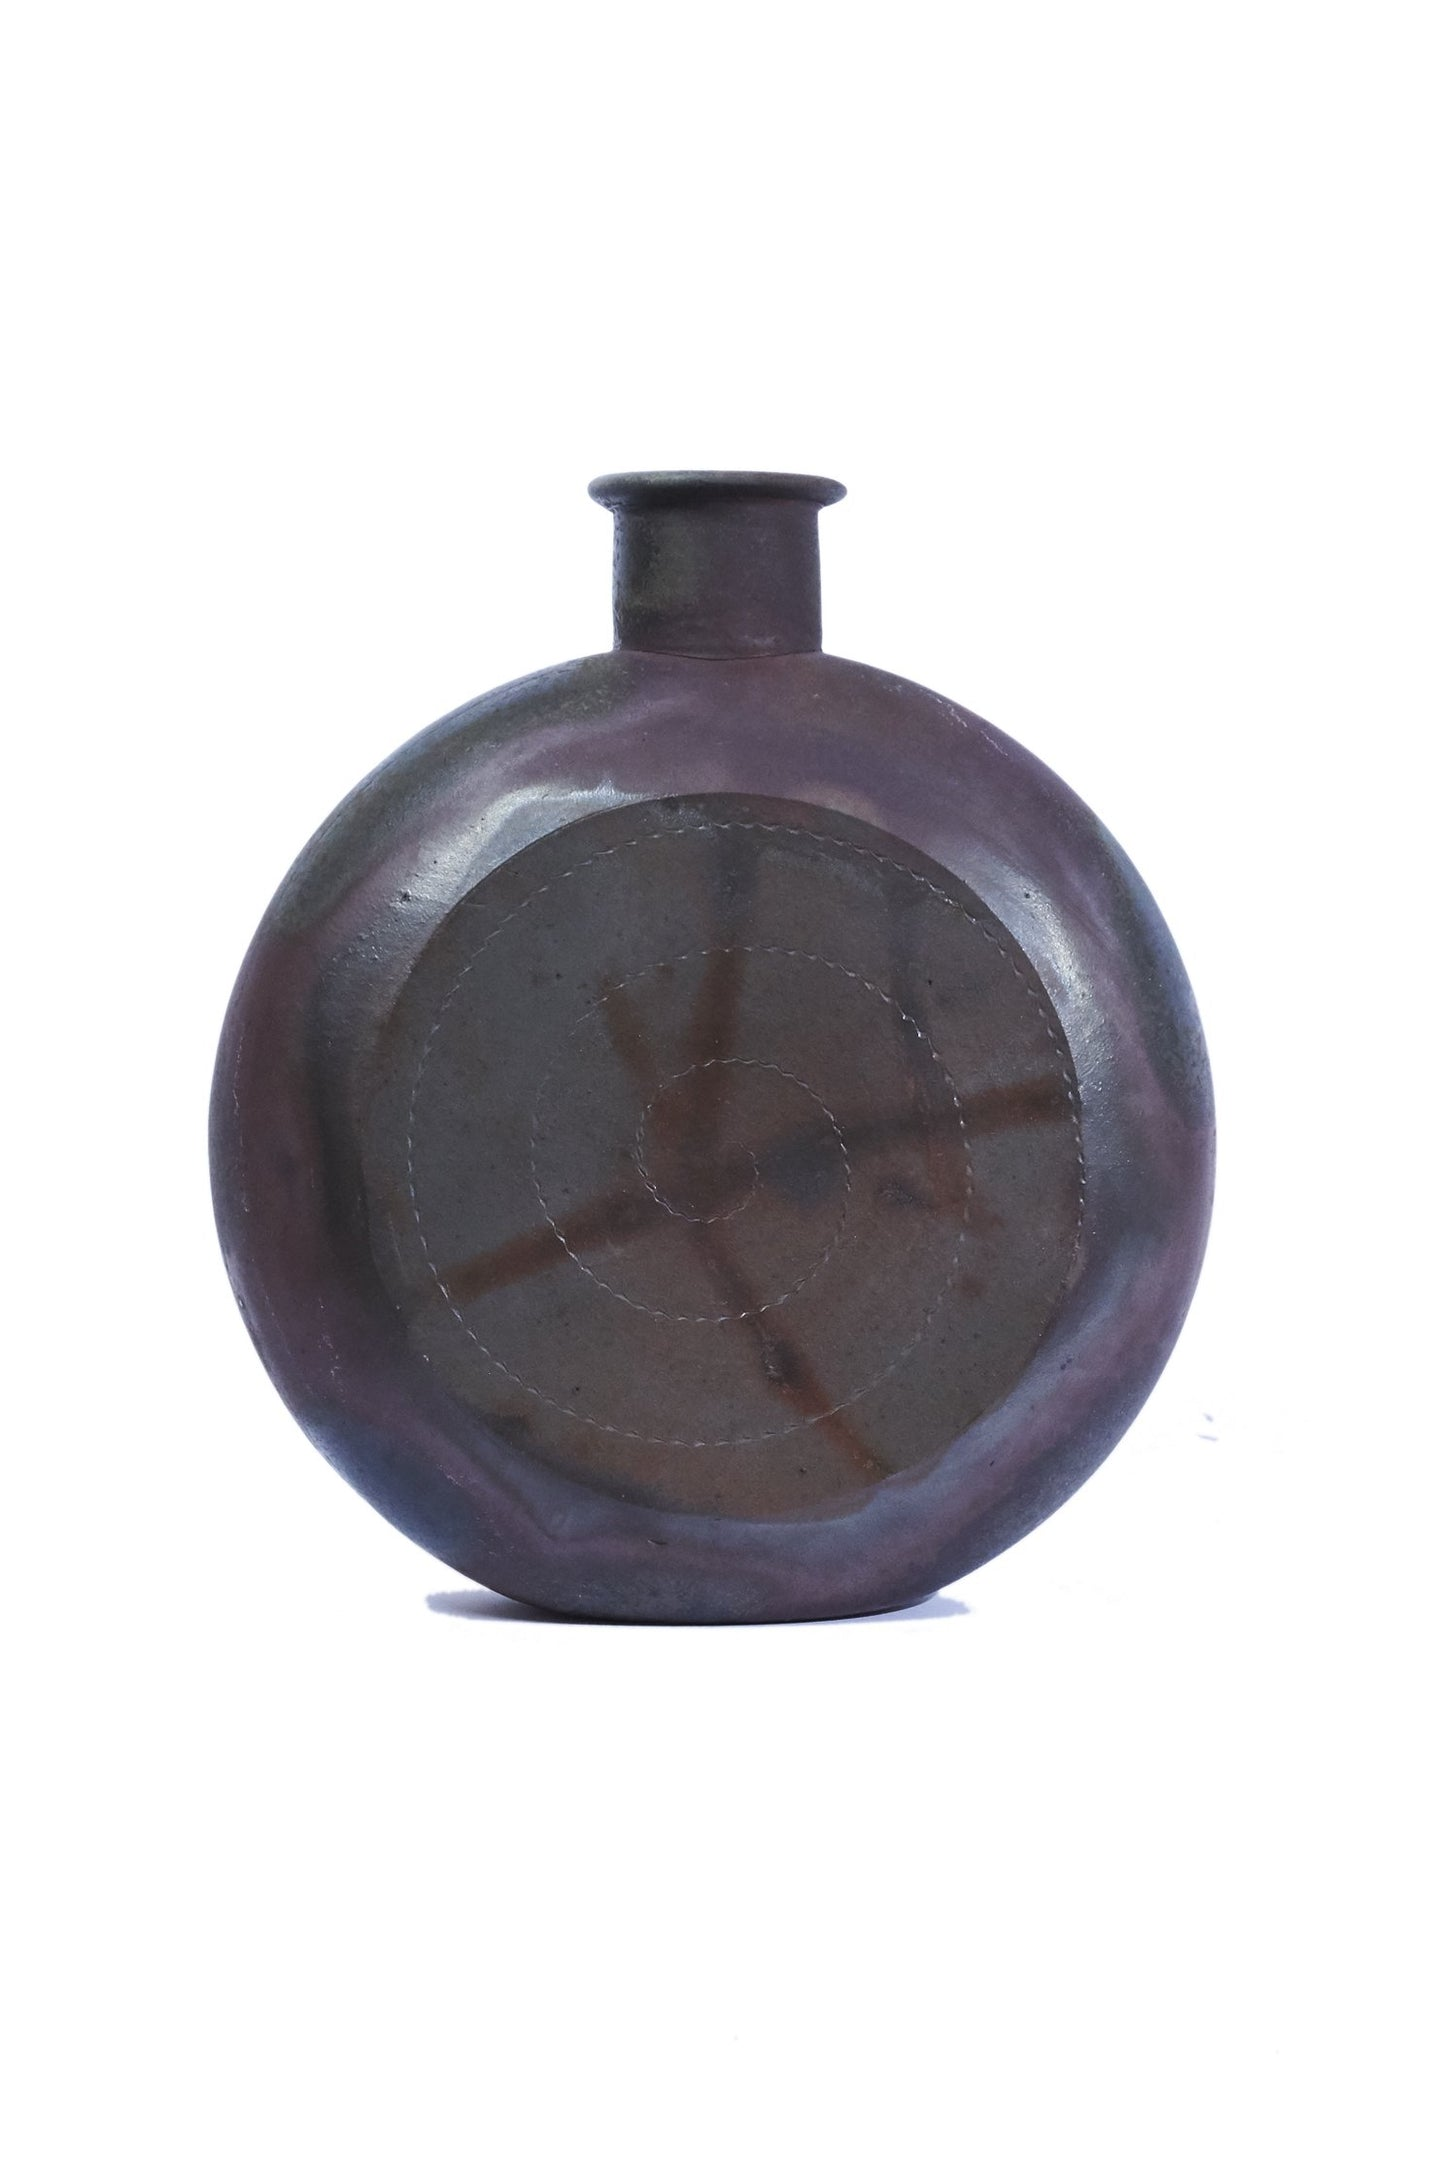 Wood Kiln Pilgrim Flask by Samuel Johnson